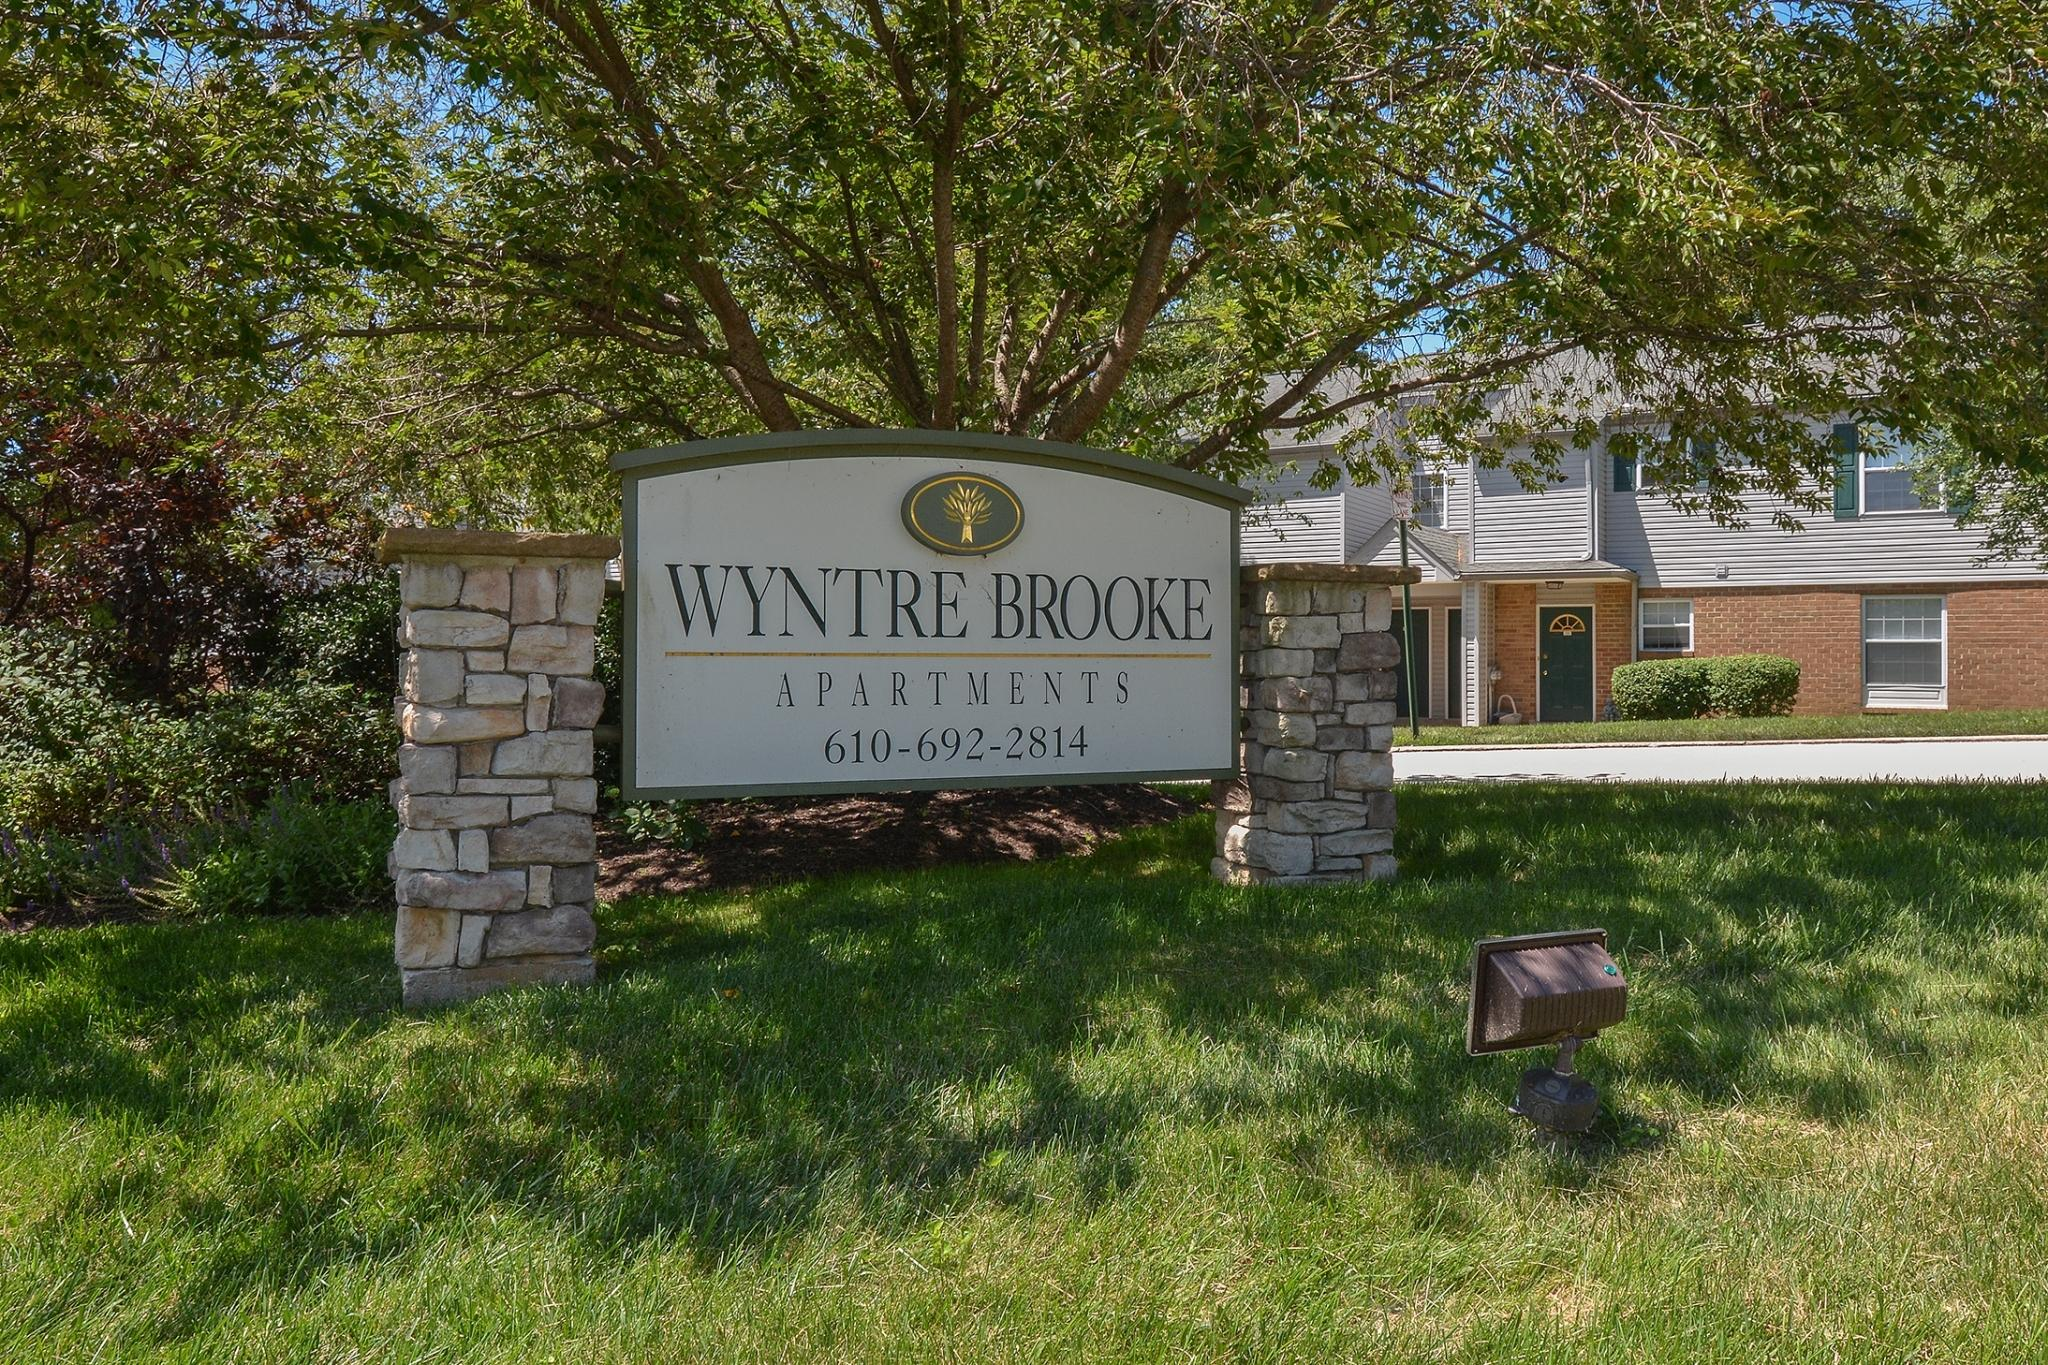 Apartments For Rent In West Chester PA Wyntre Brooke - Racquet club apartments west chester pa